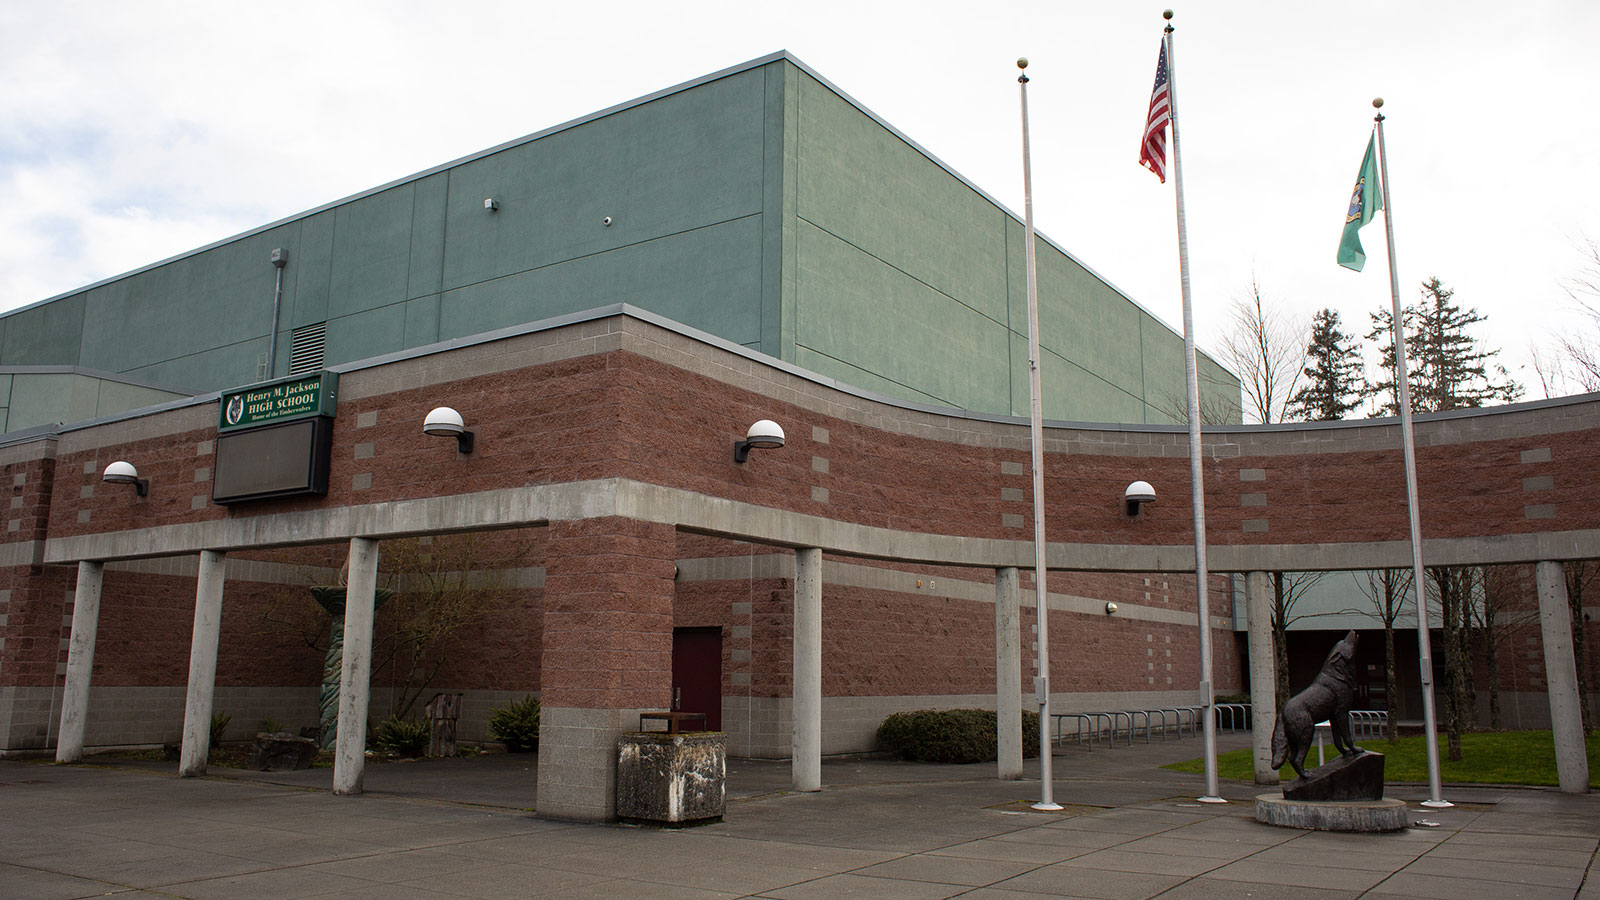 The exterior of Jackson High School is seen in Mill Creek, Washington on February 29.